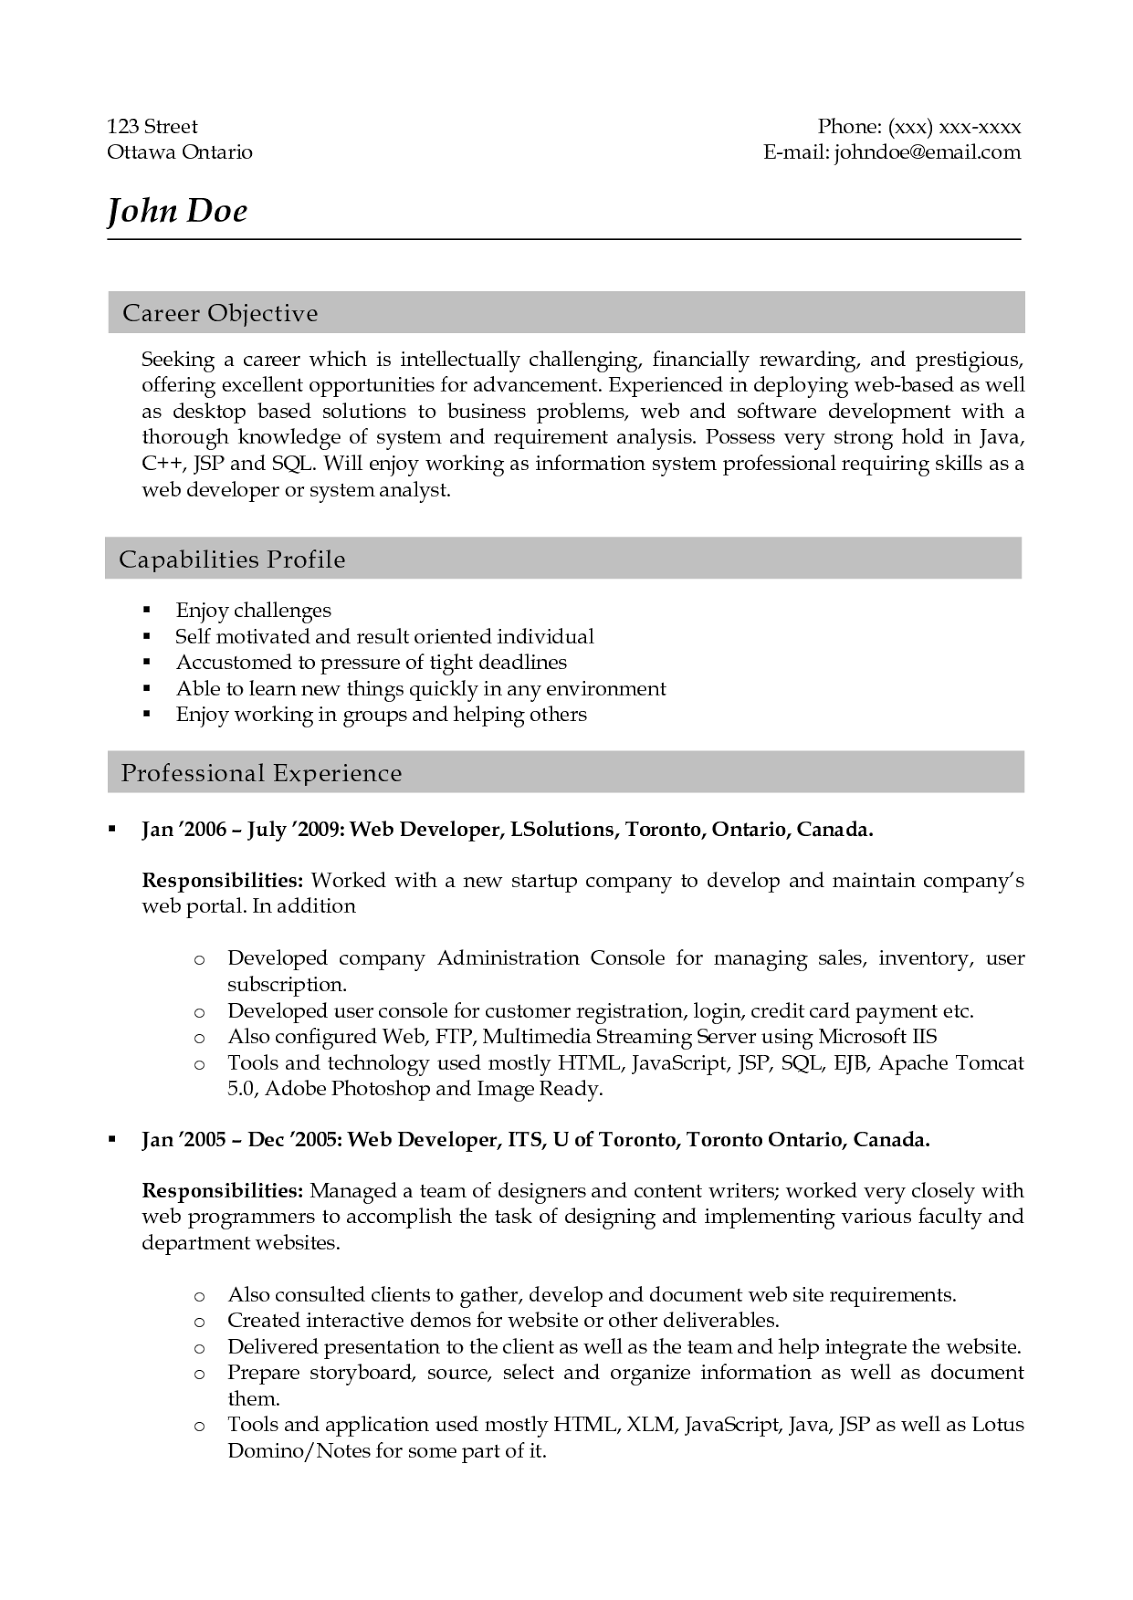 Resume Template   How To Use If Statements With Conga Composer And     CareerBuilder